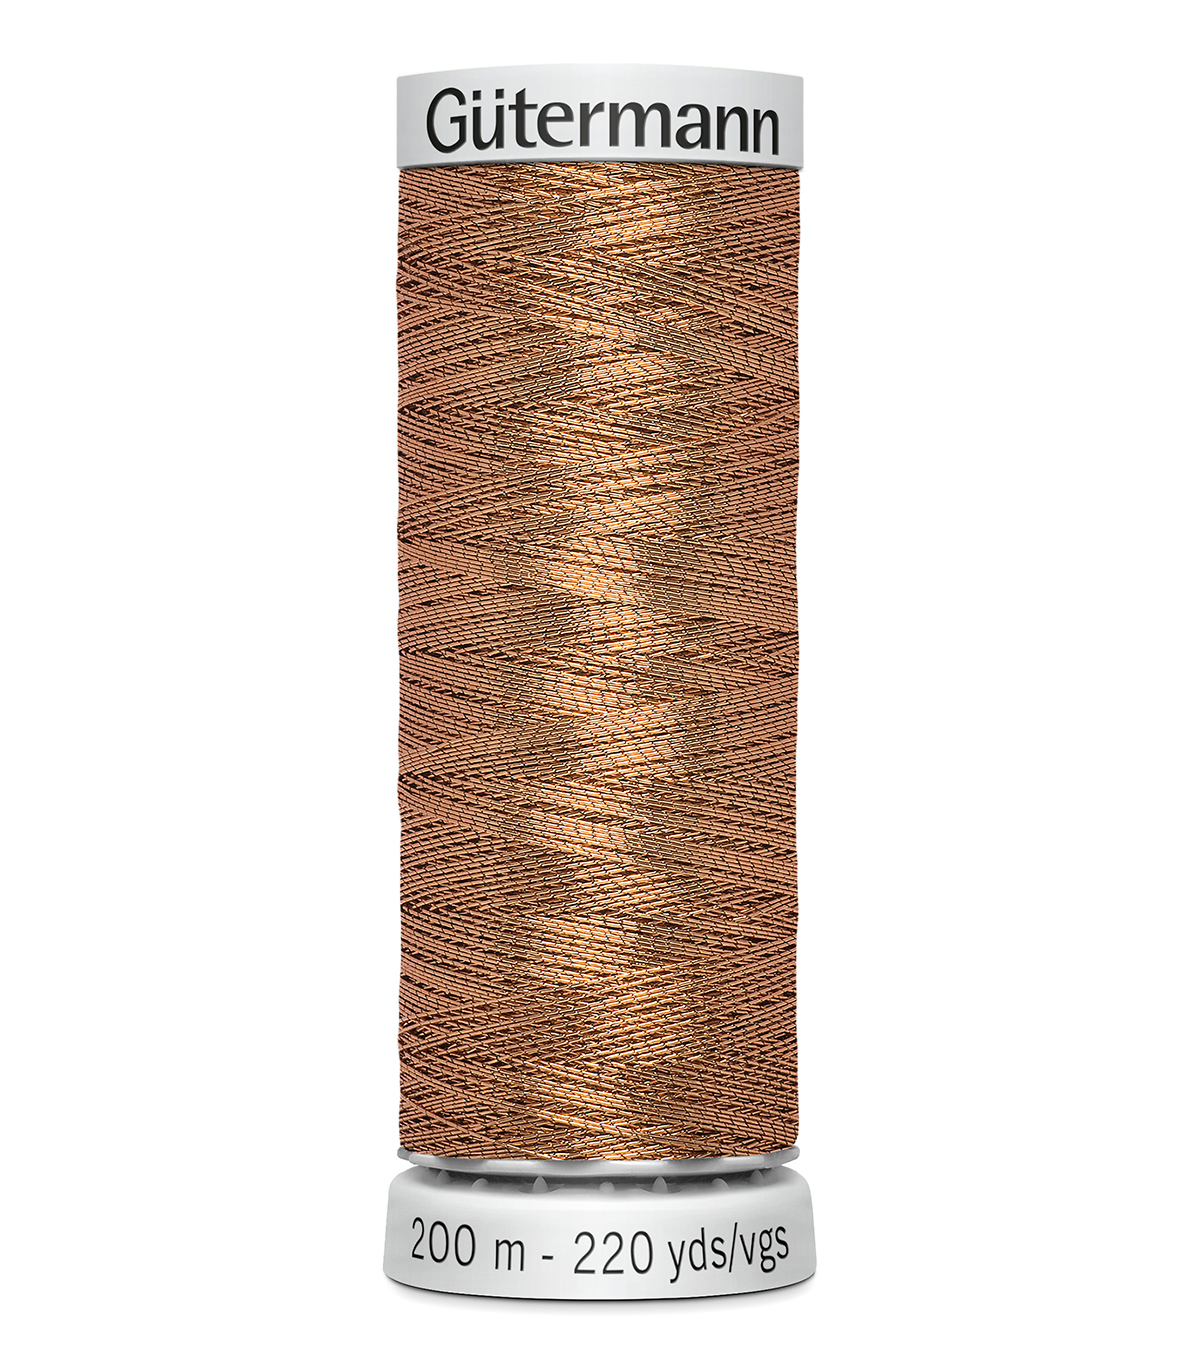 Gutermann 200M Dekor Thread, 200m Delor Metallic-bronze